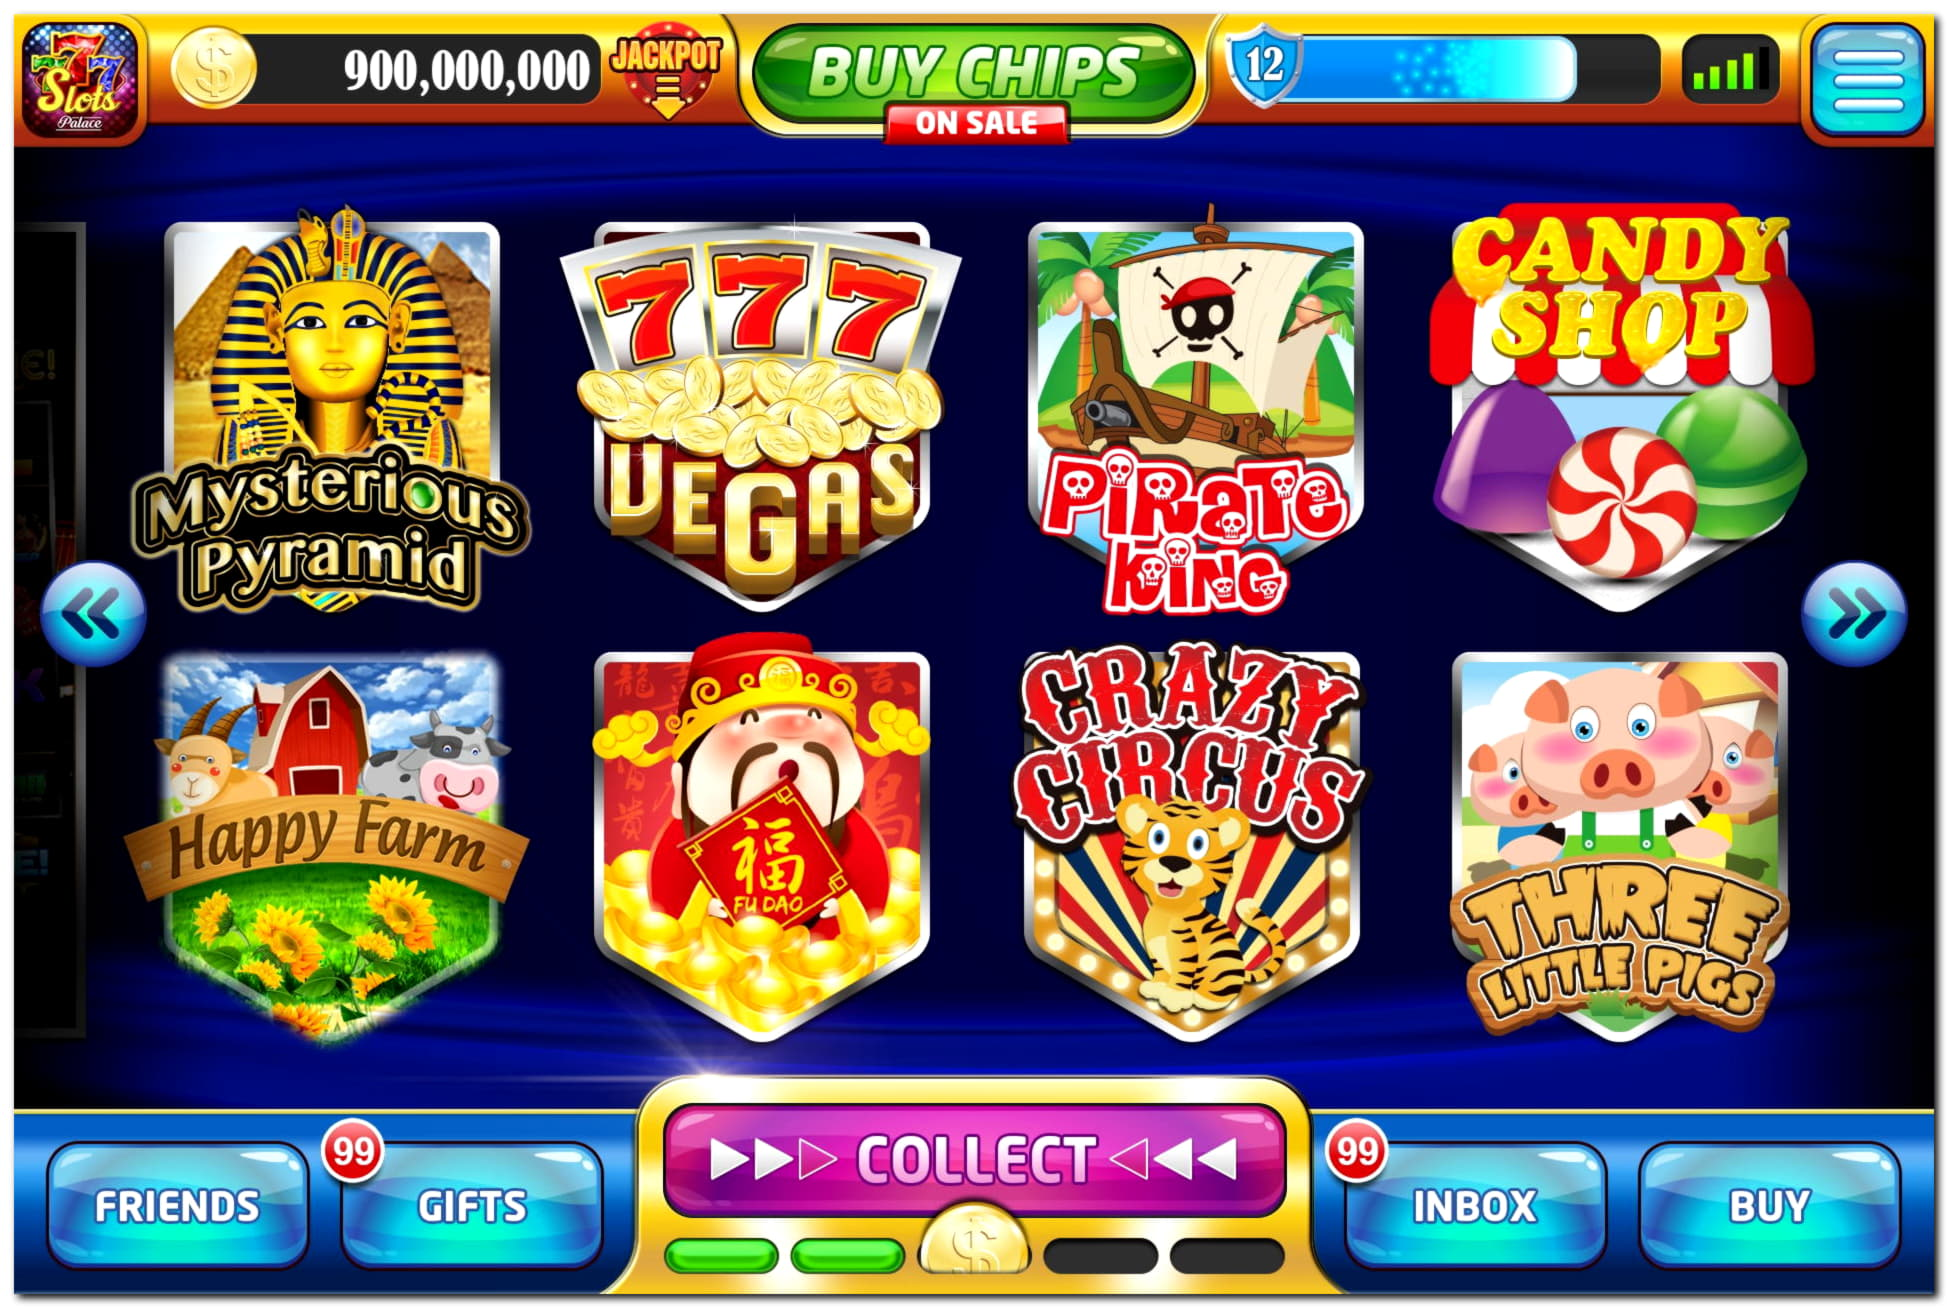 €230 FREE Chip Casino at Bet At Home Casino